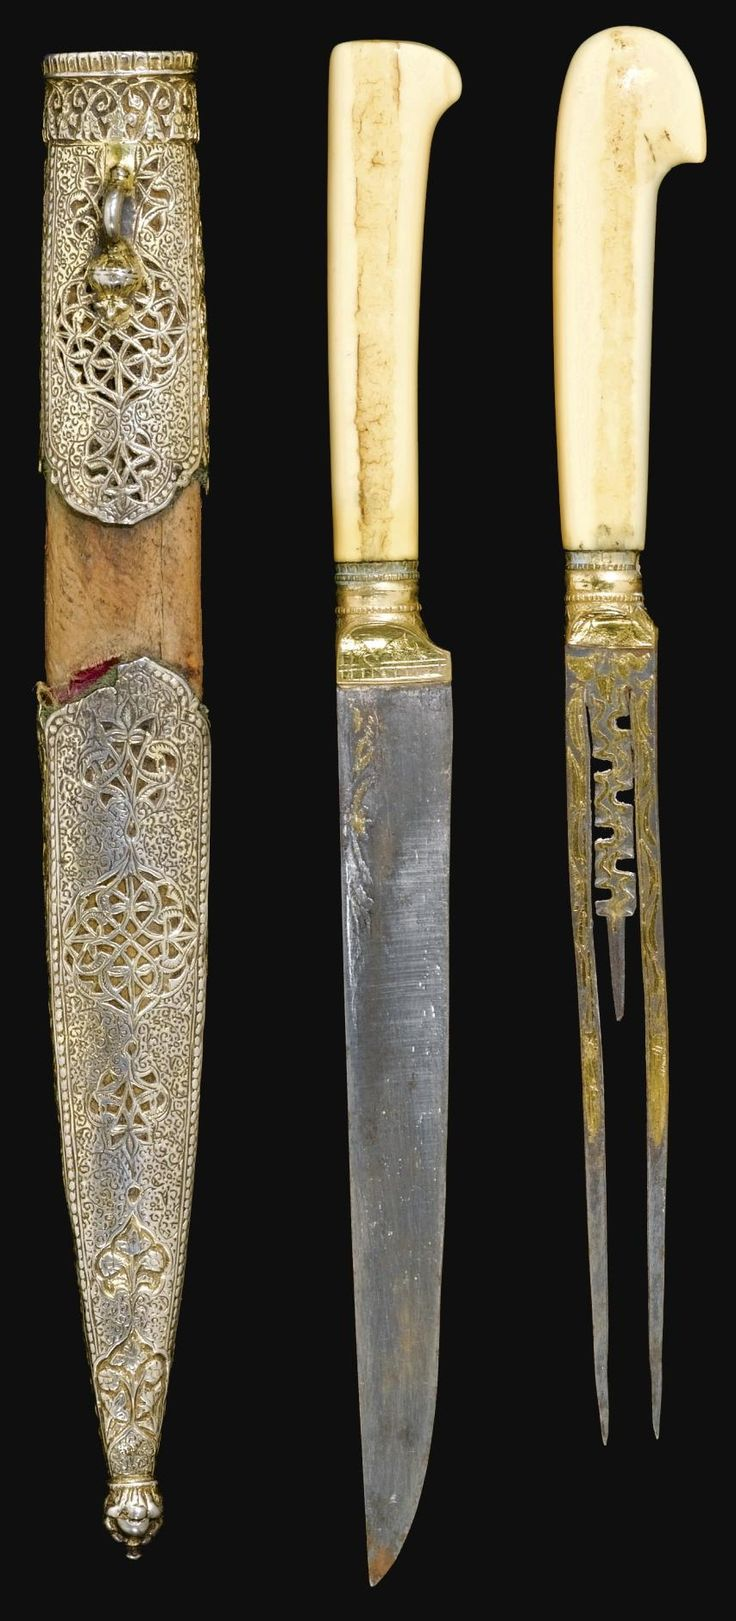 Ottoman knife and fork set (trousse), 19th century, both with marine ivory hilts, the steel knife and foliate pronged fork overlaid with gold and engraved at the forte, wood scabbard with faceted silver-gilt mounts engraved with an arabesque of spiraling scrolls and palmettes, openwork medallions bordered by floral scrolls, bud terminal and foliate suspension loop 27.5cm.